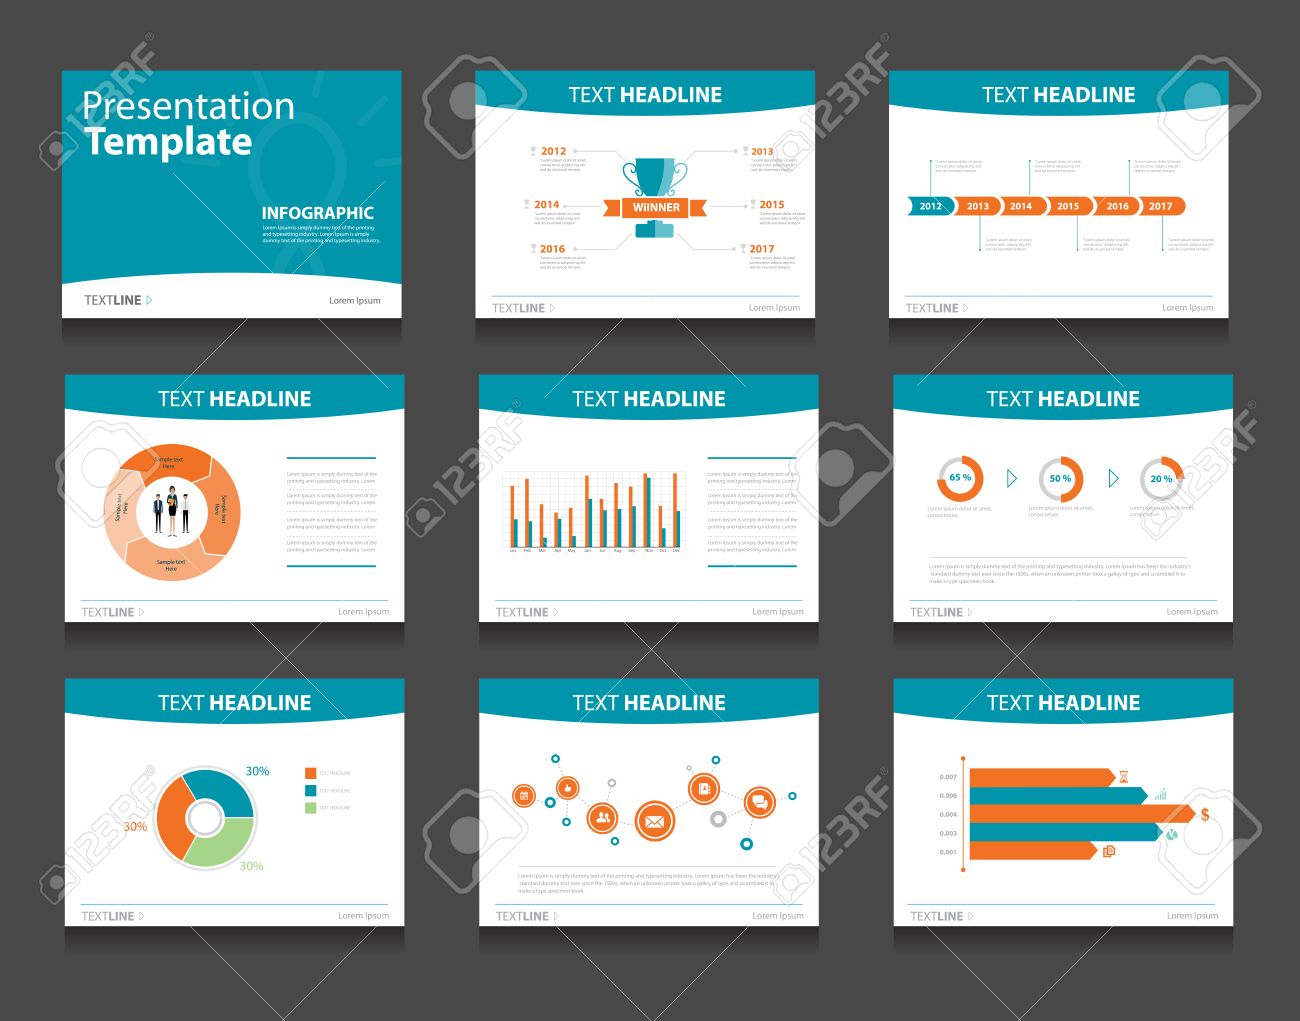 infographic powerpoint template design backgrounds . business, Modern powerpoint